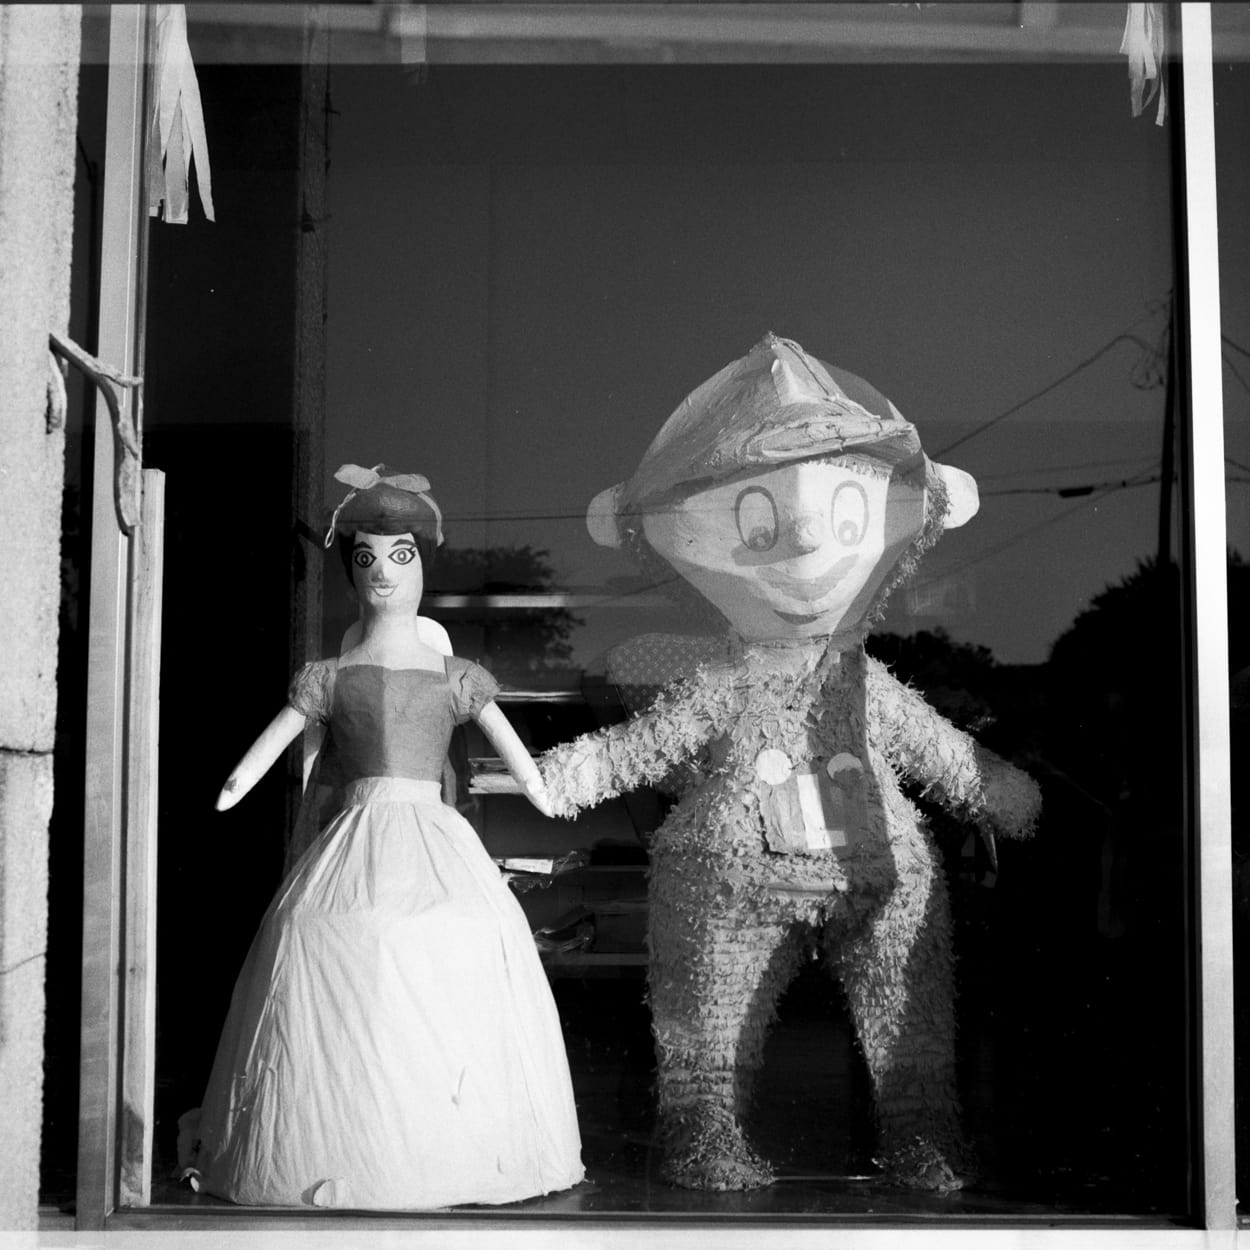 Snow White and Mario piñatas holding hands like two lovers in a window display